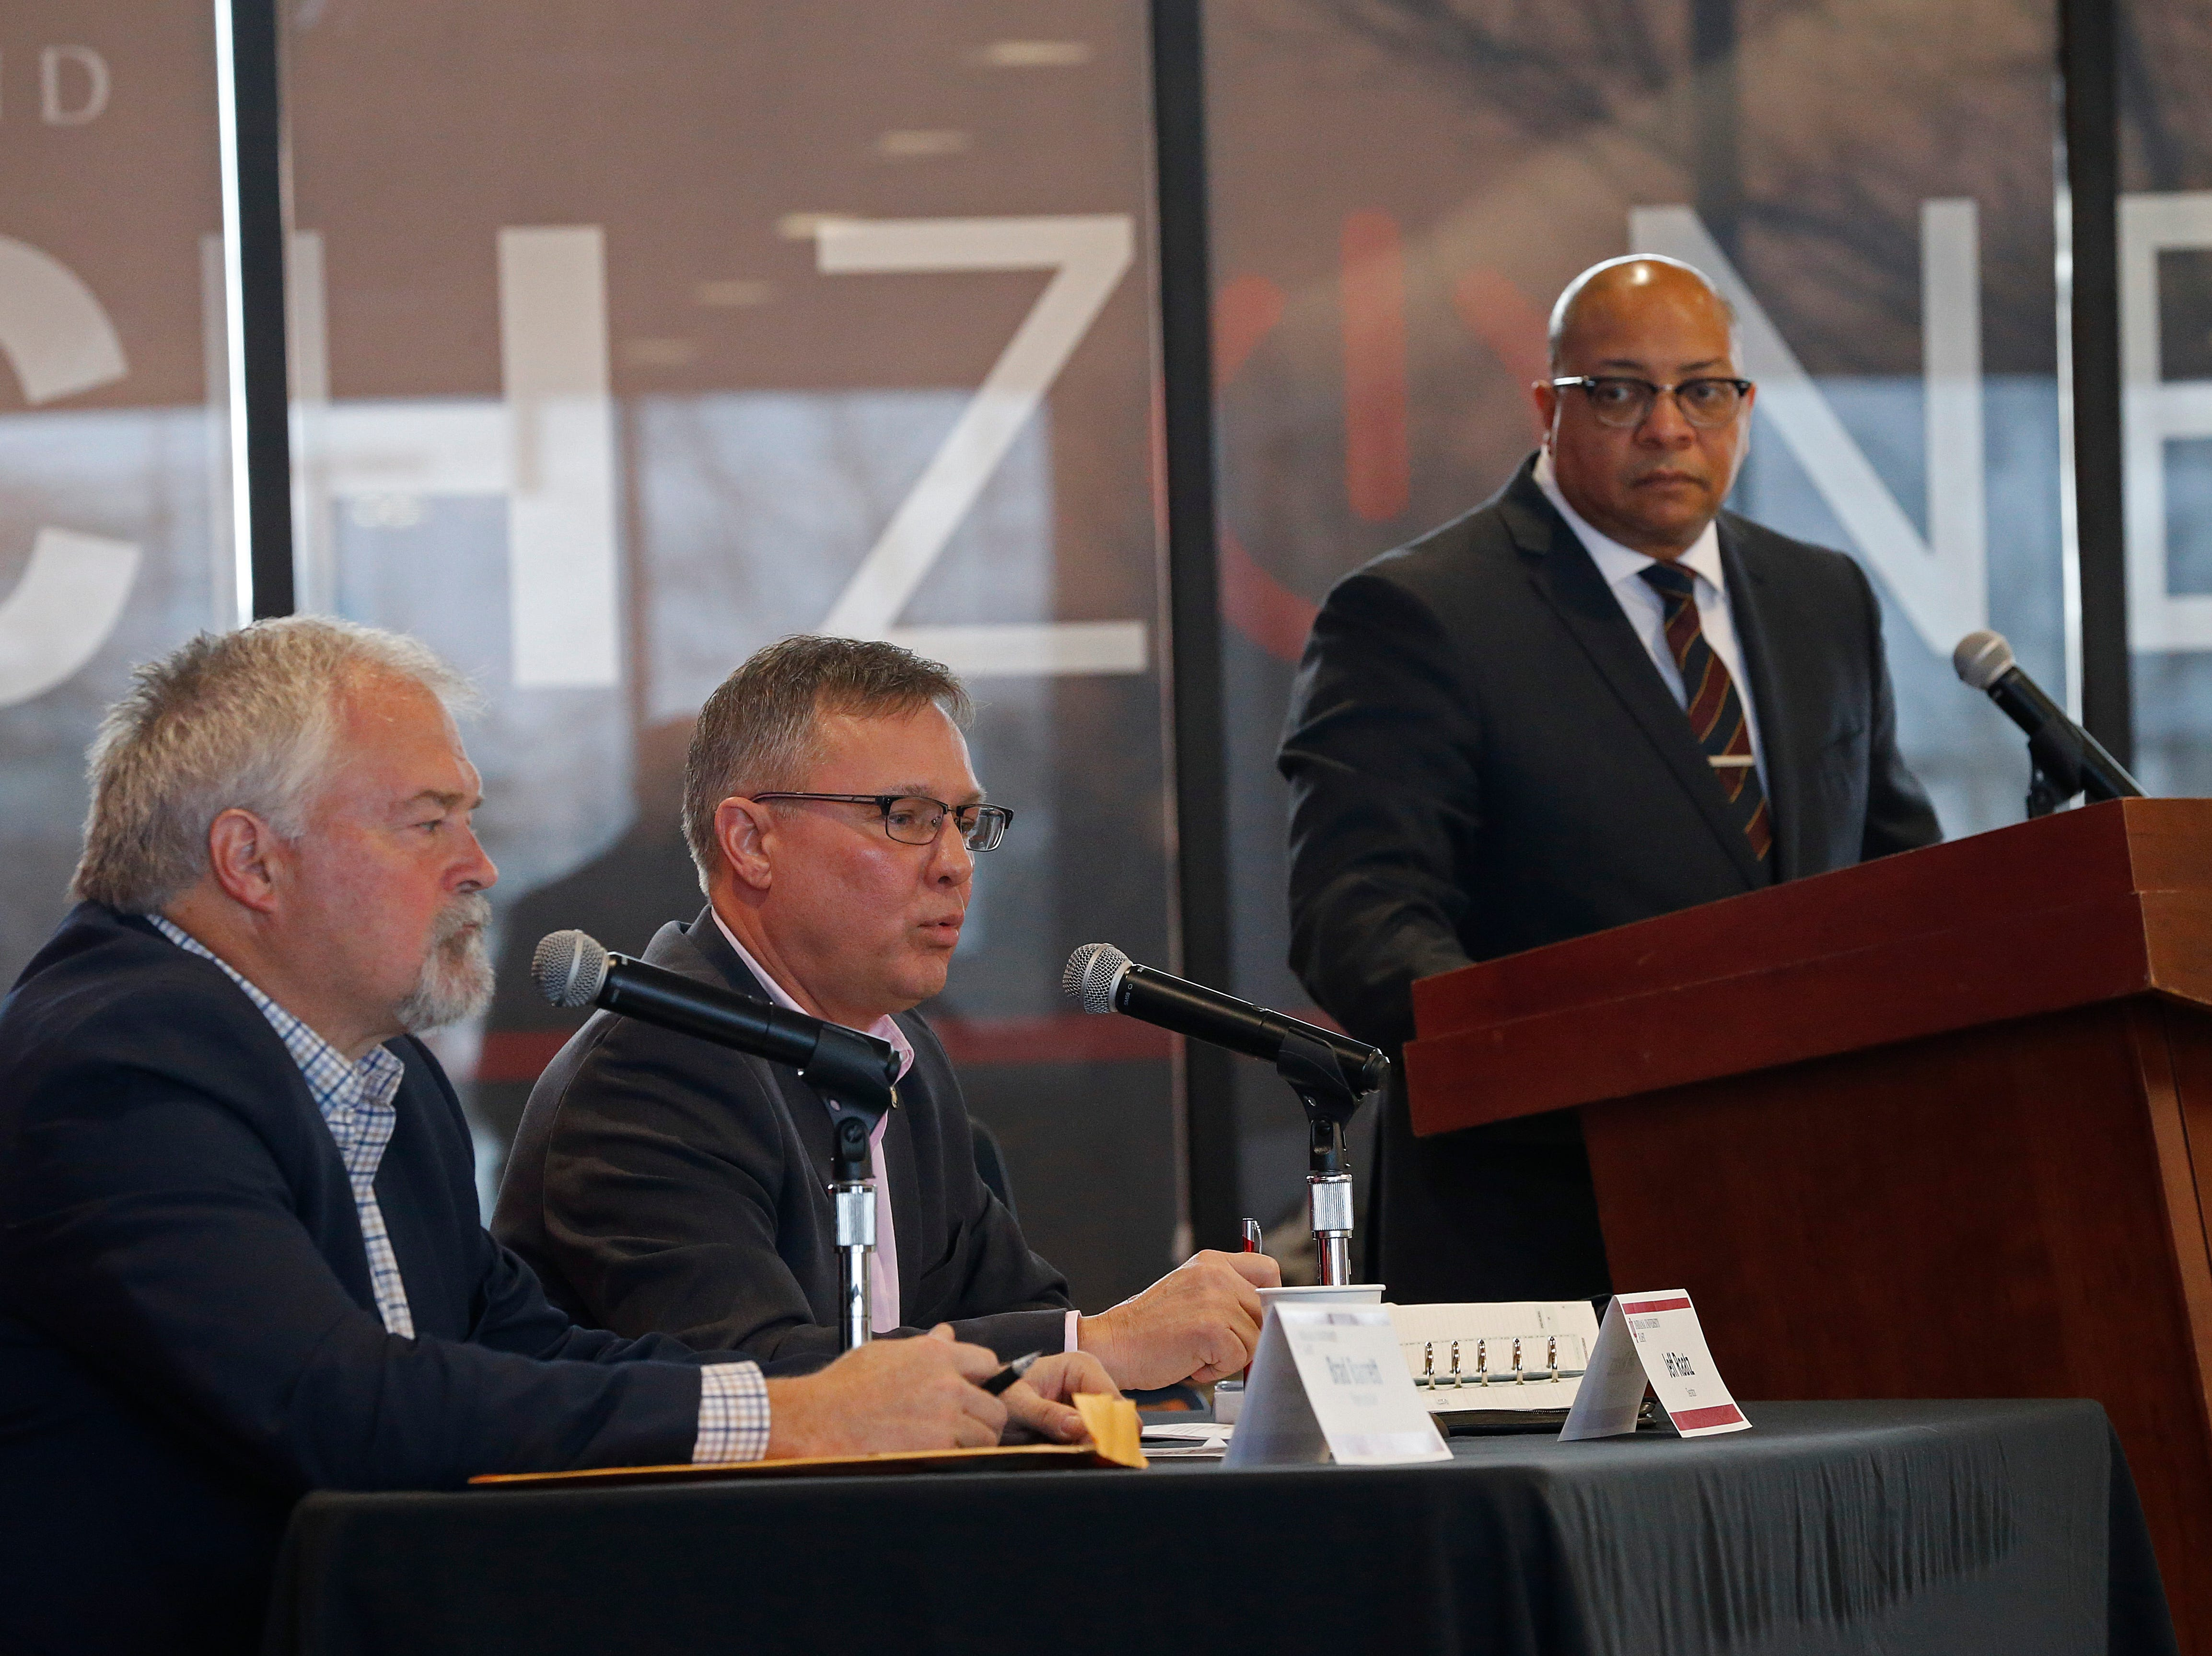 State Sen. Jeff Raatz (center) answers a question from the audience during Friday's Legislative Forum at IU East. It was the second of three such events planned for this year.